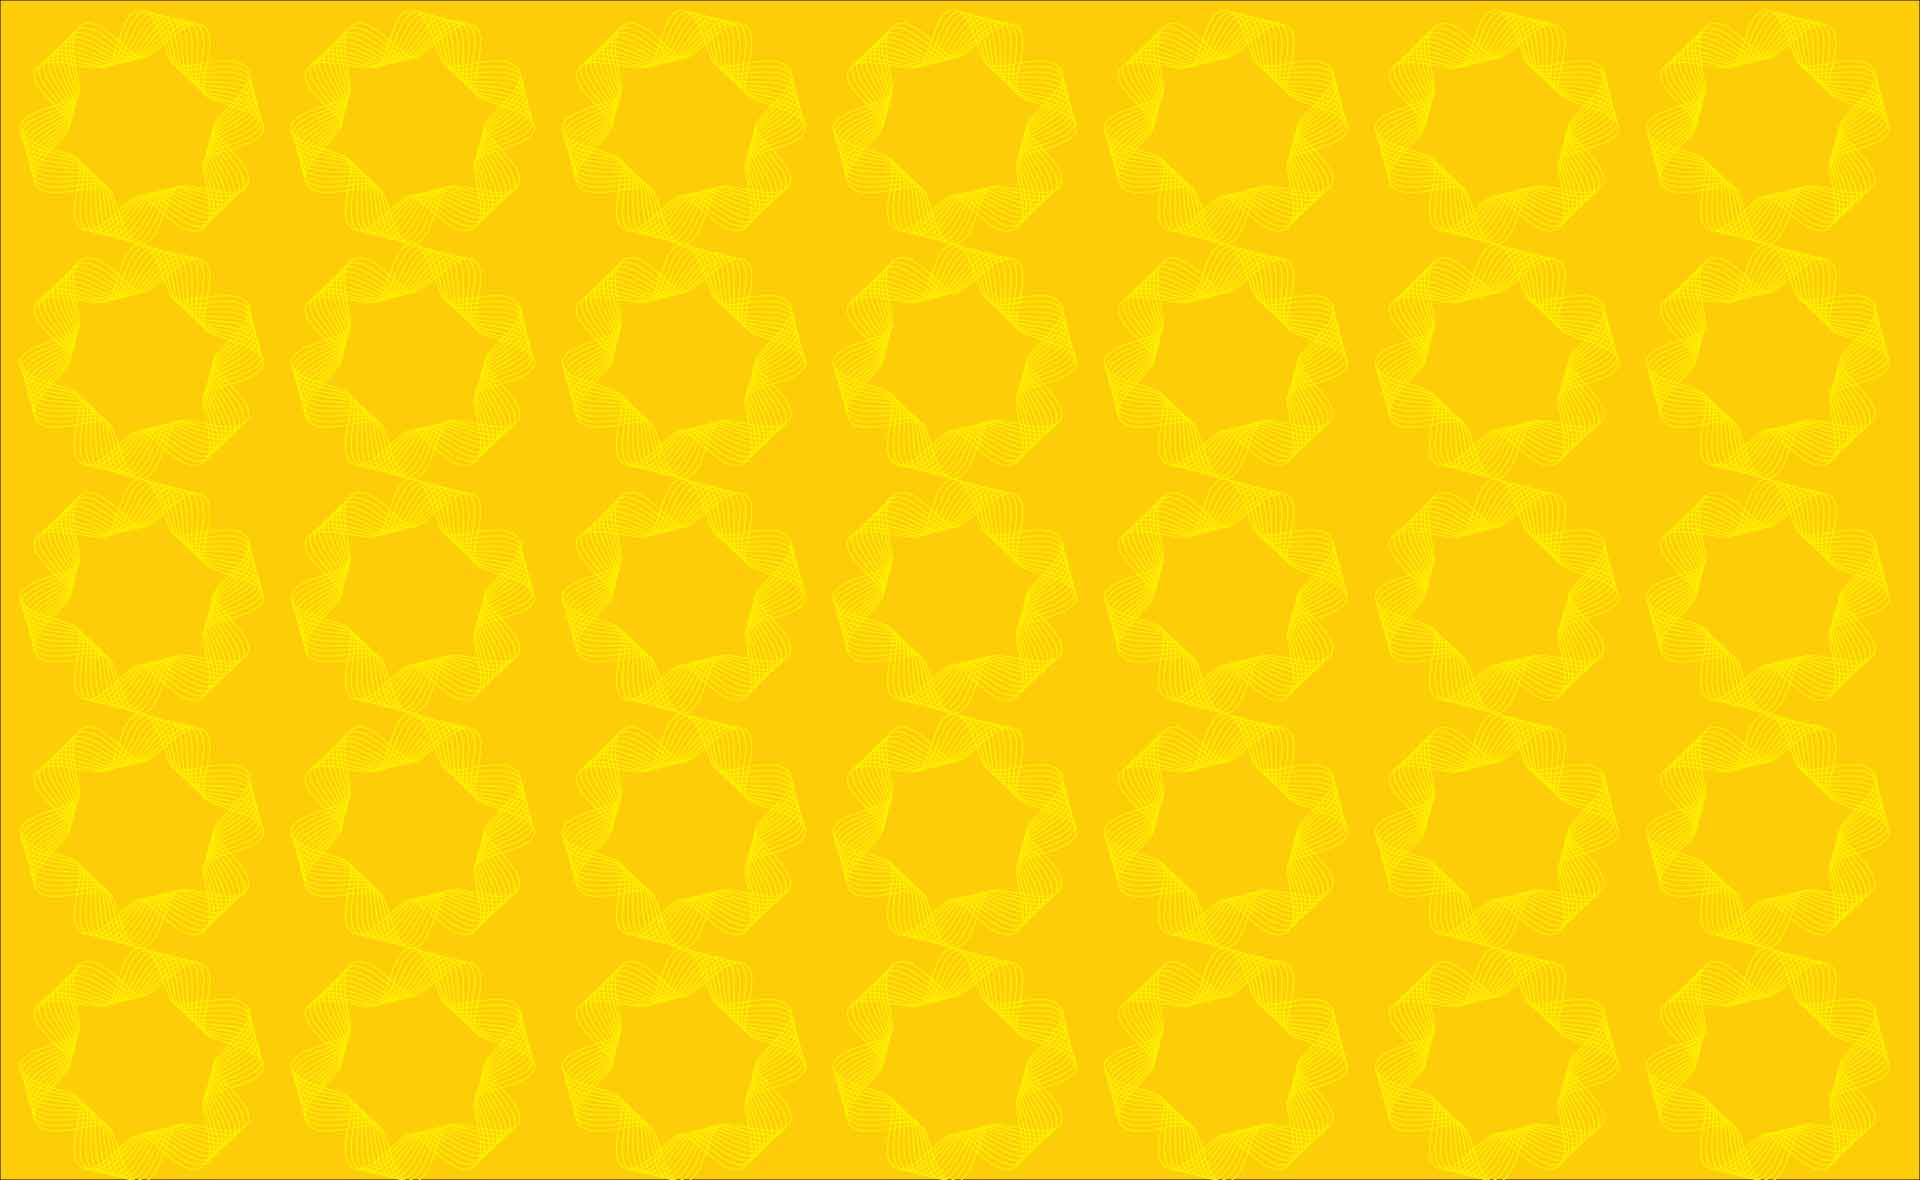 Yellow Background Texture Images 1000 Download Vector 1920x1180